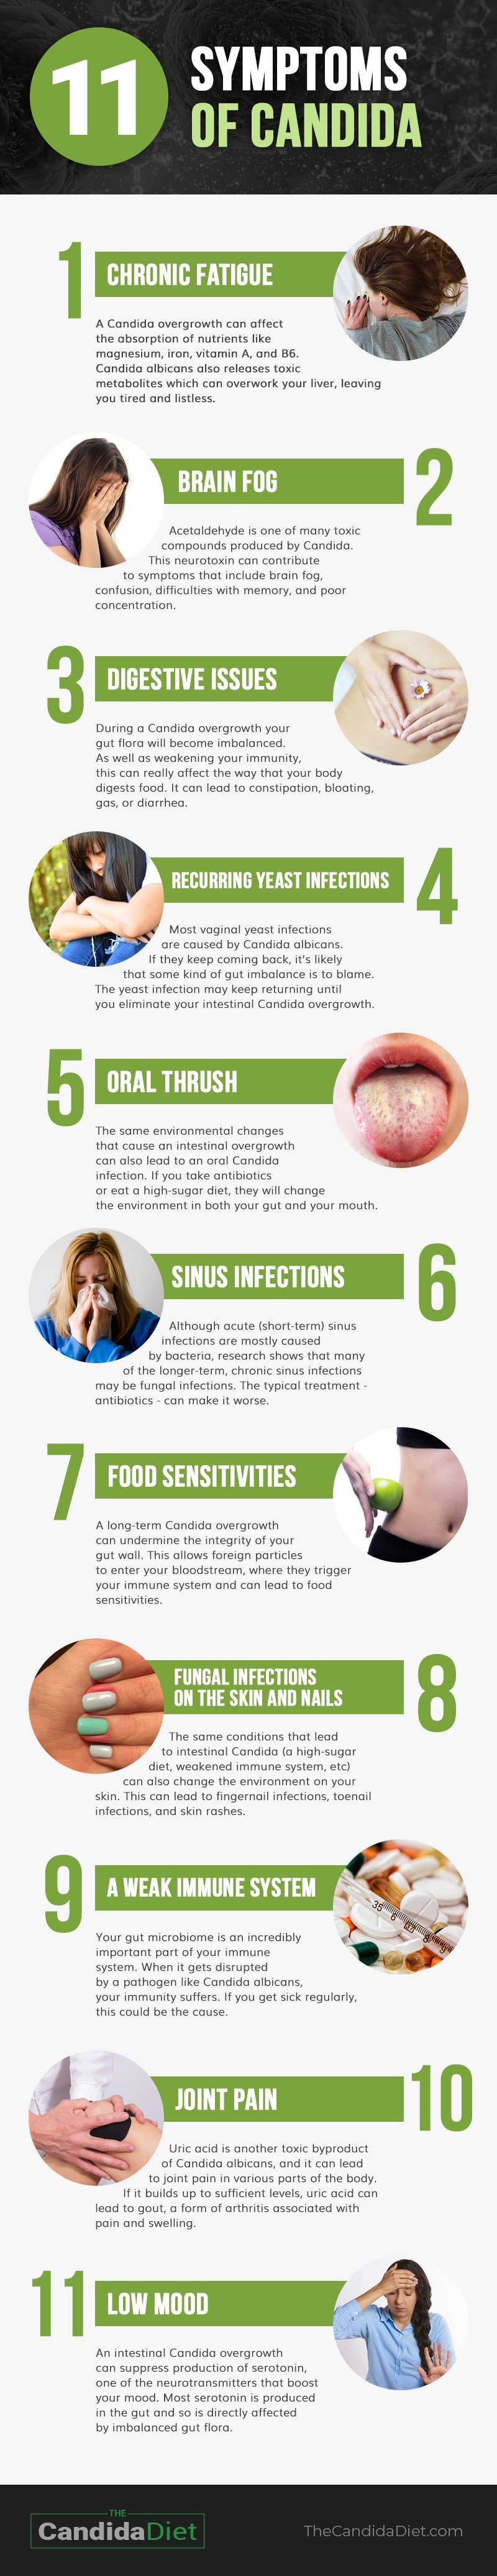 Infographic showing the 11 symptoms of Candida and how to treat them